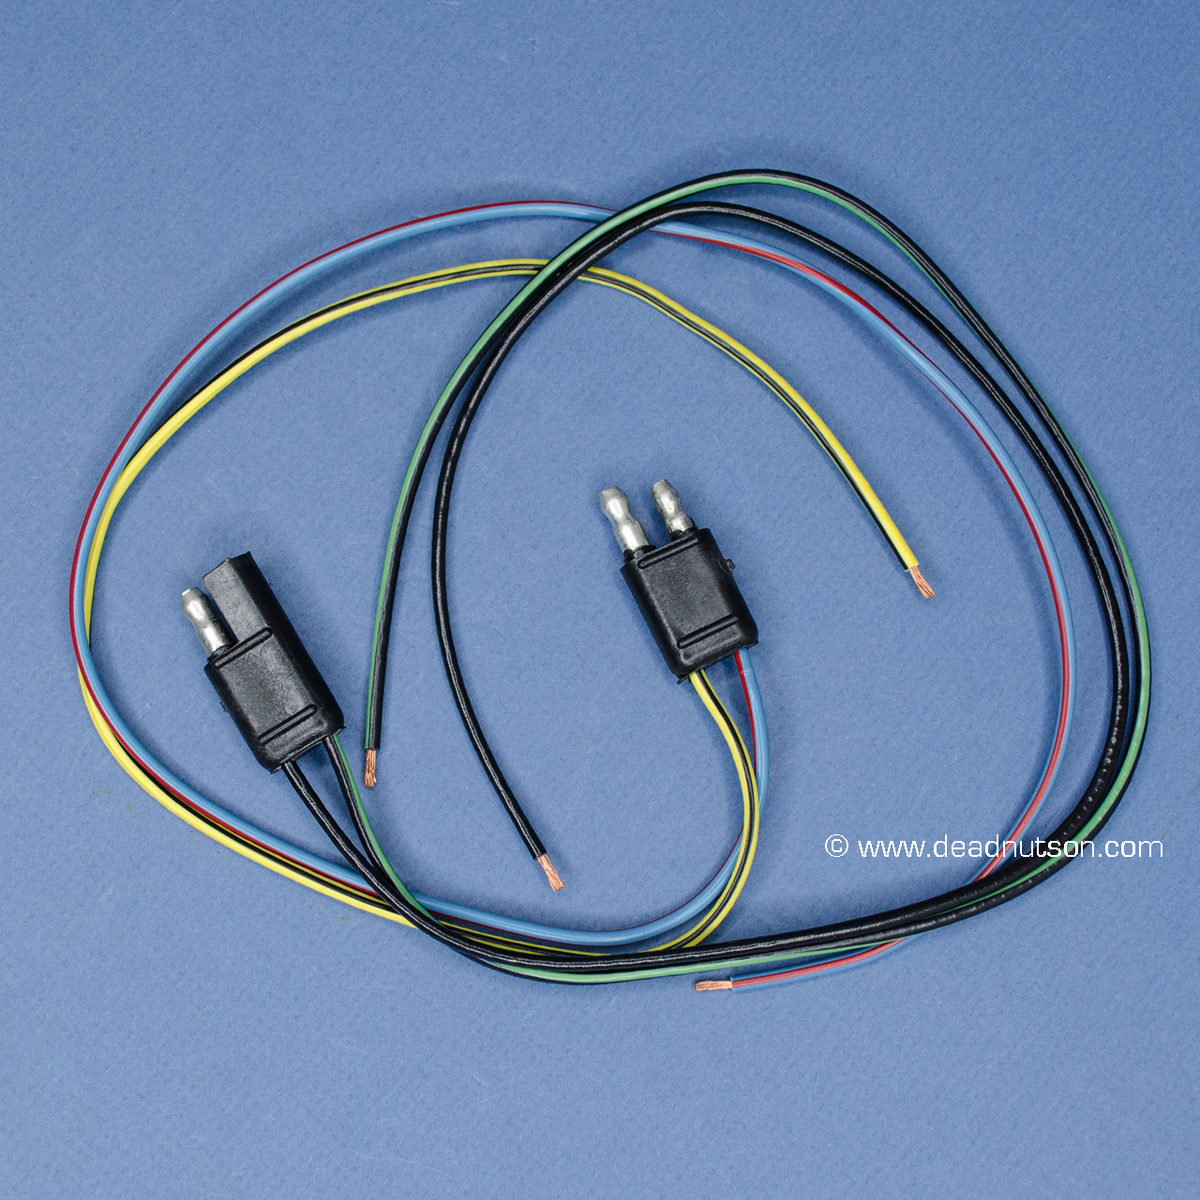 1967-70 mustang am radio wiring repair harness set - dead nuts on  dead nuts on